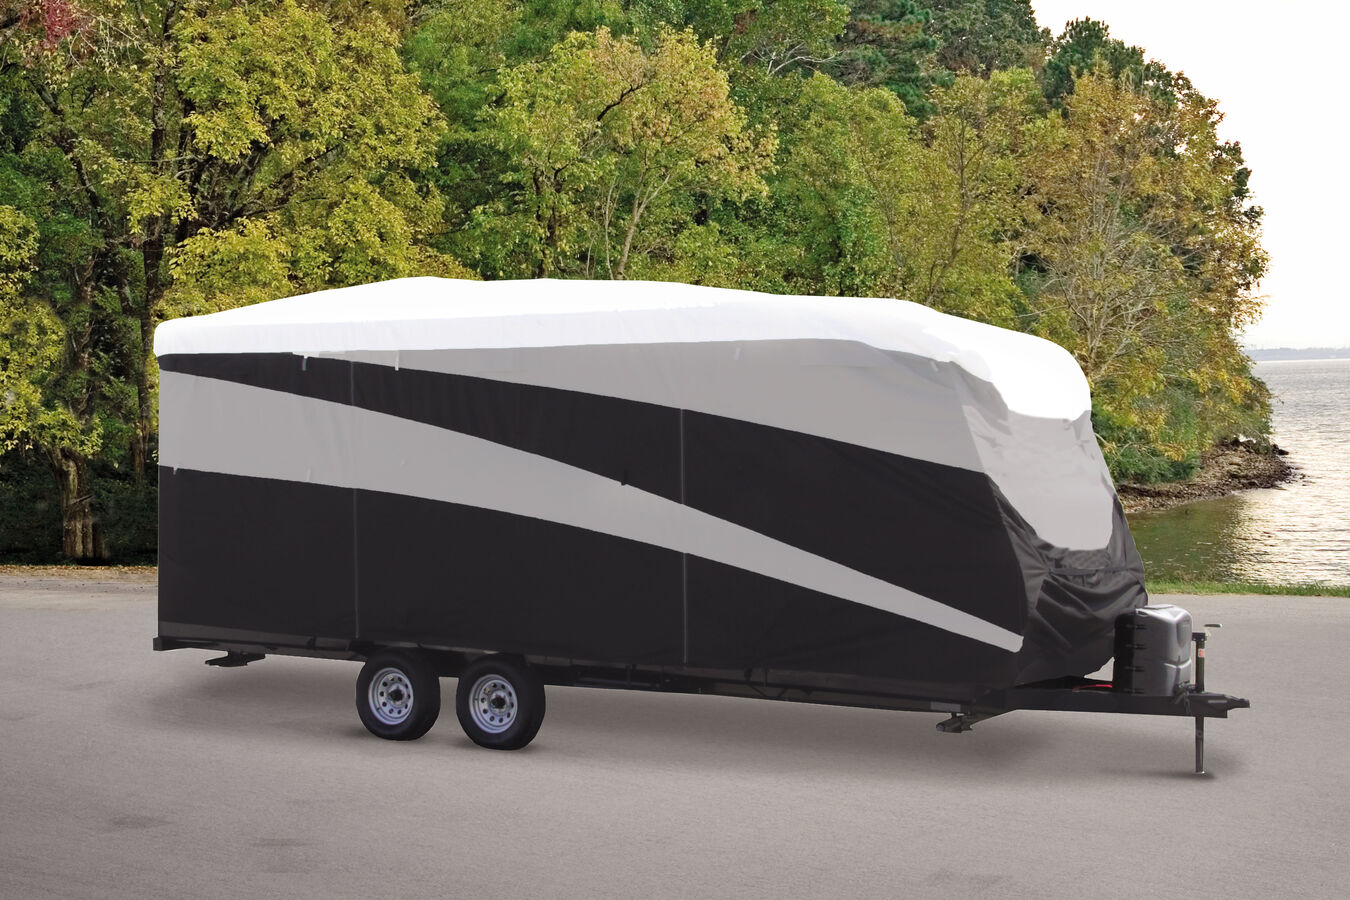 Camco Ultra Shield Travel Trailer Rv Cover Camping World